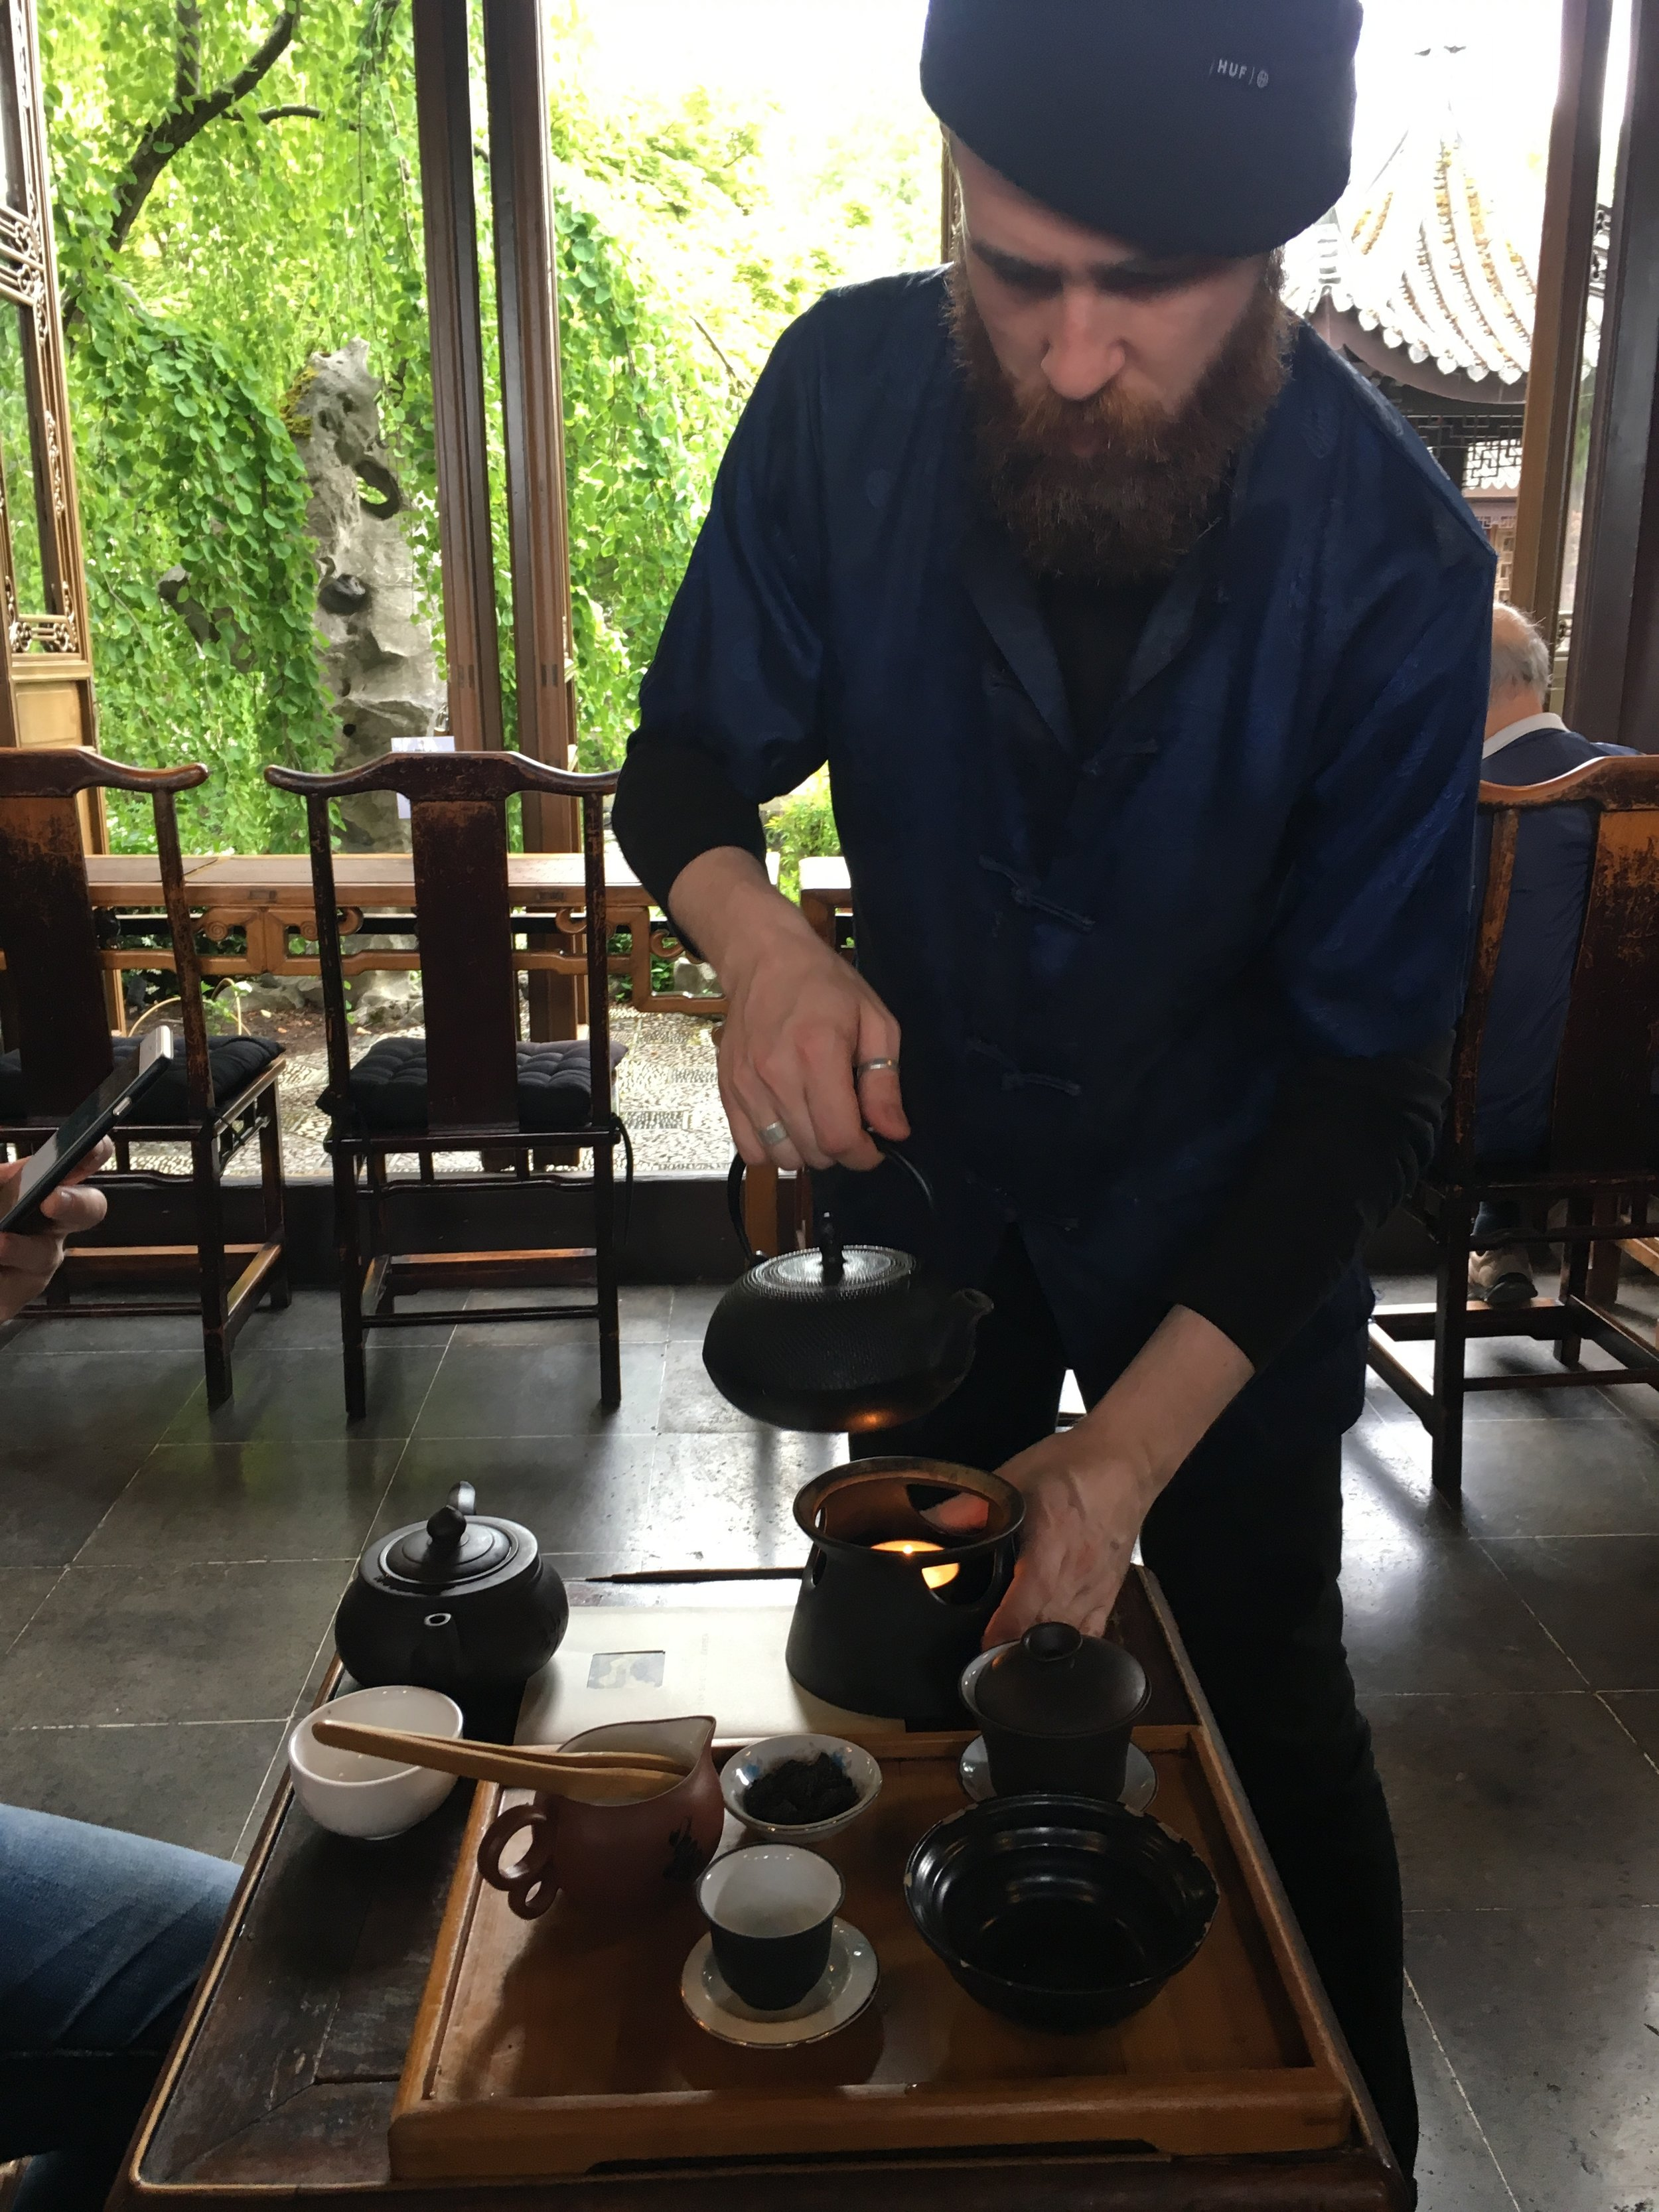 Wade is the tea master at the garden. If you ever had a chance to visit, I highly recommend the Ceremonial Tea Set (Kung Fu Tea) with PuEr tea. Wade will demonstrate and guide you through the way of tea brewing. (only $8)